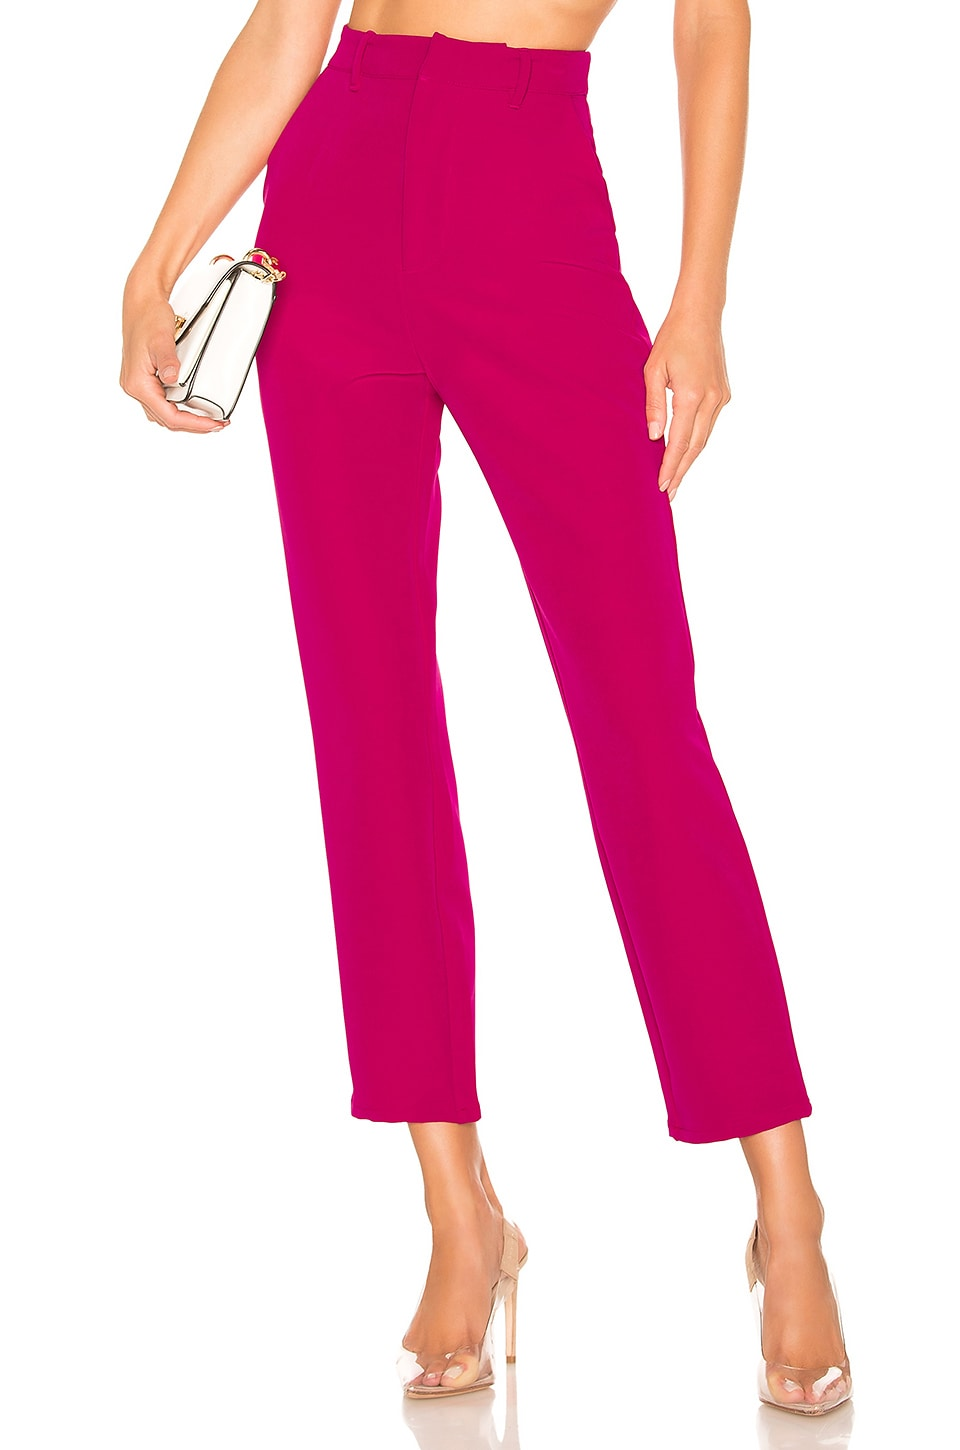 Lovers + Friends Tempo Skinny Pant in Magenta